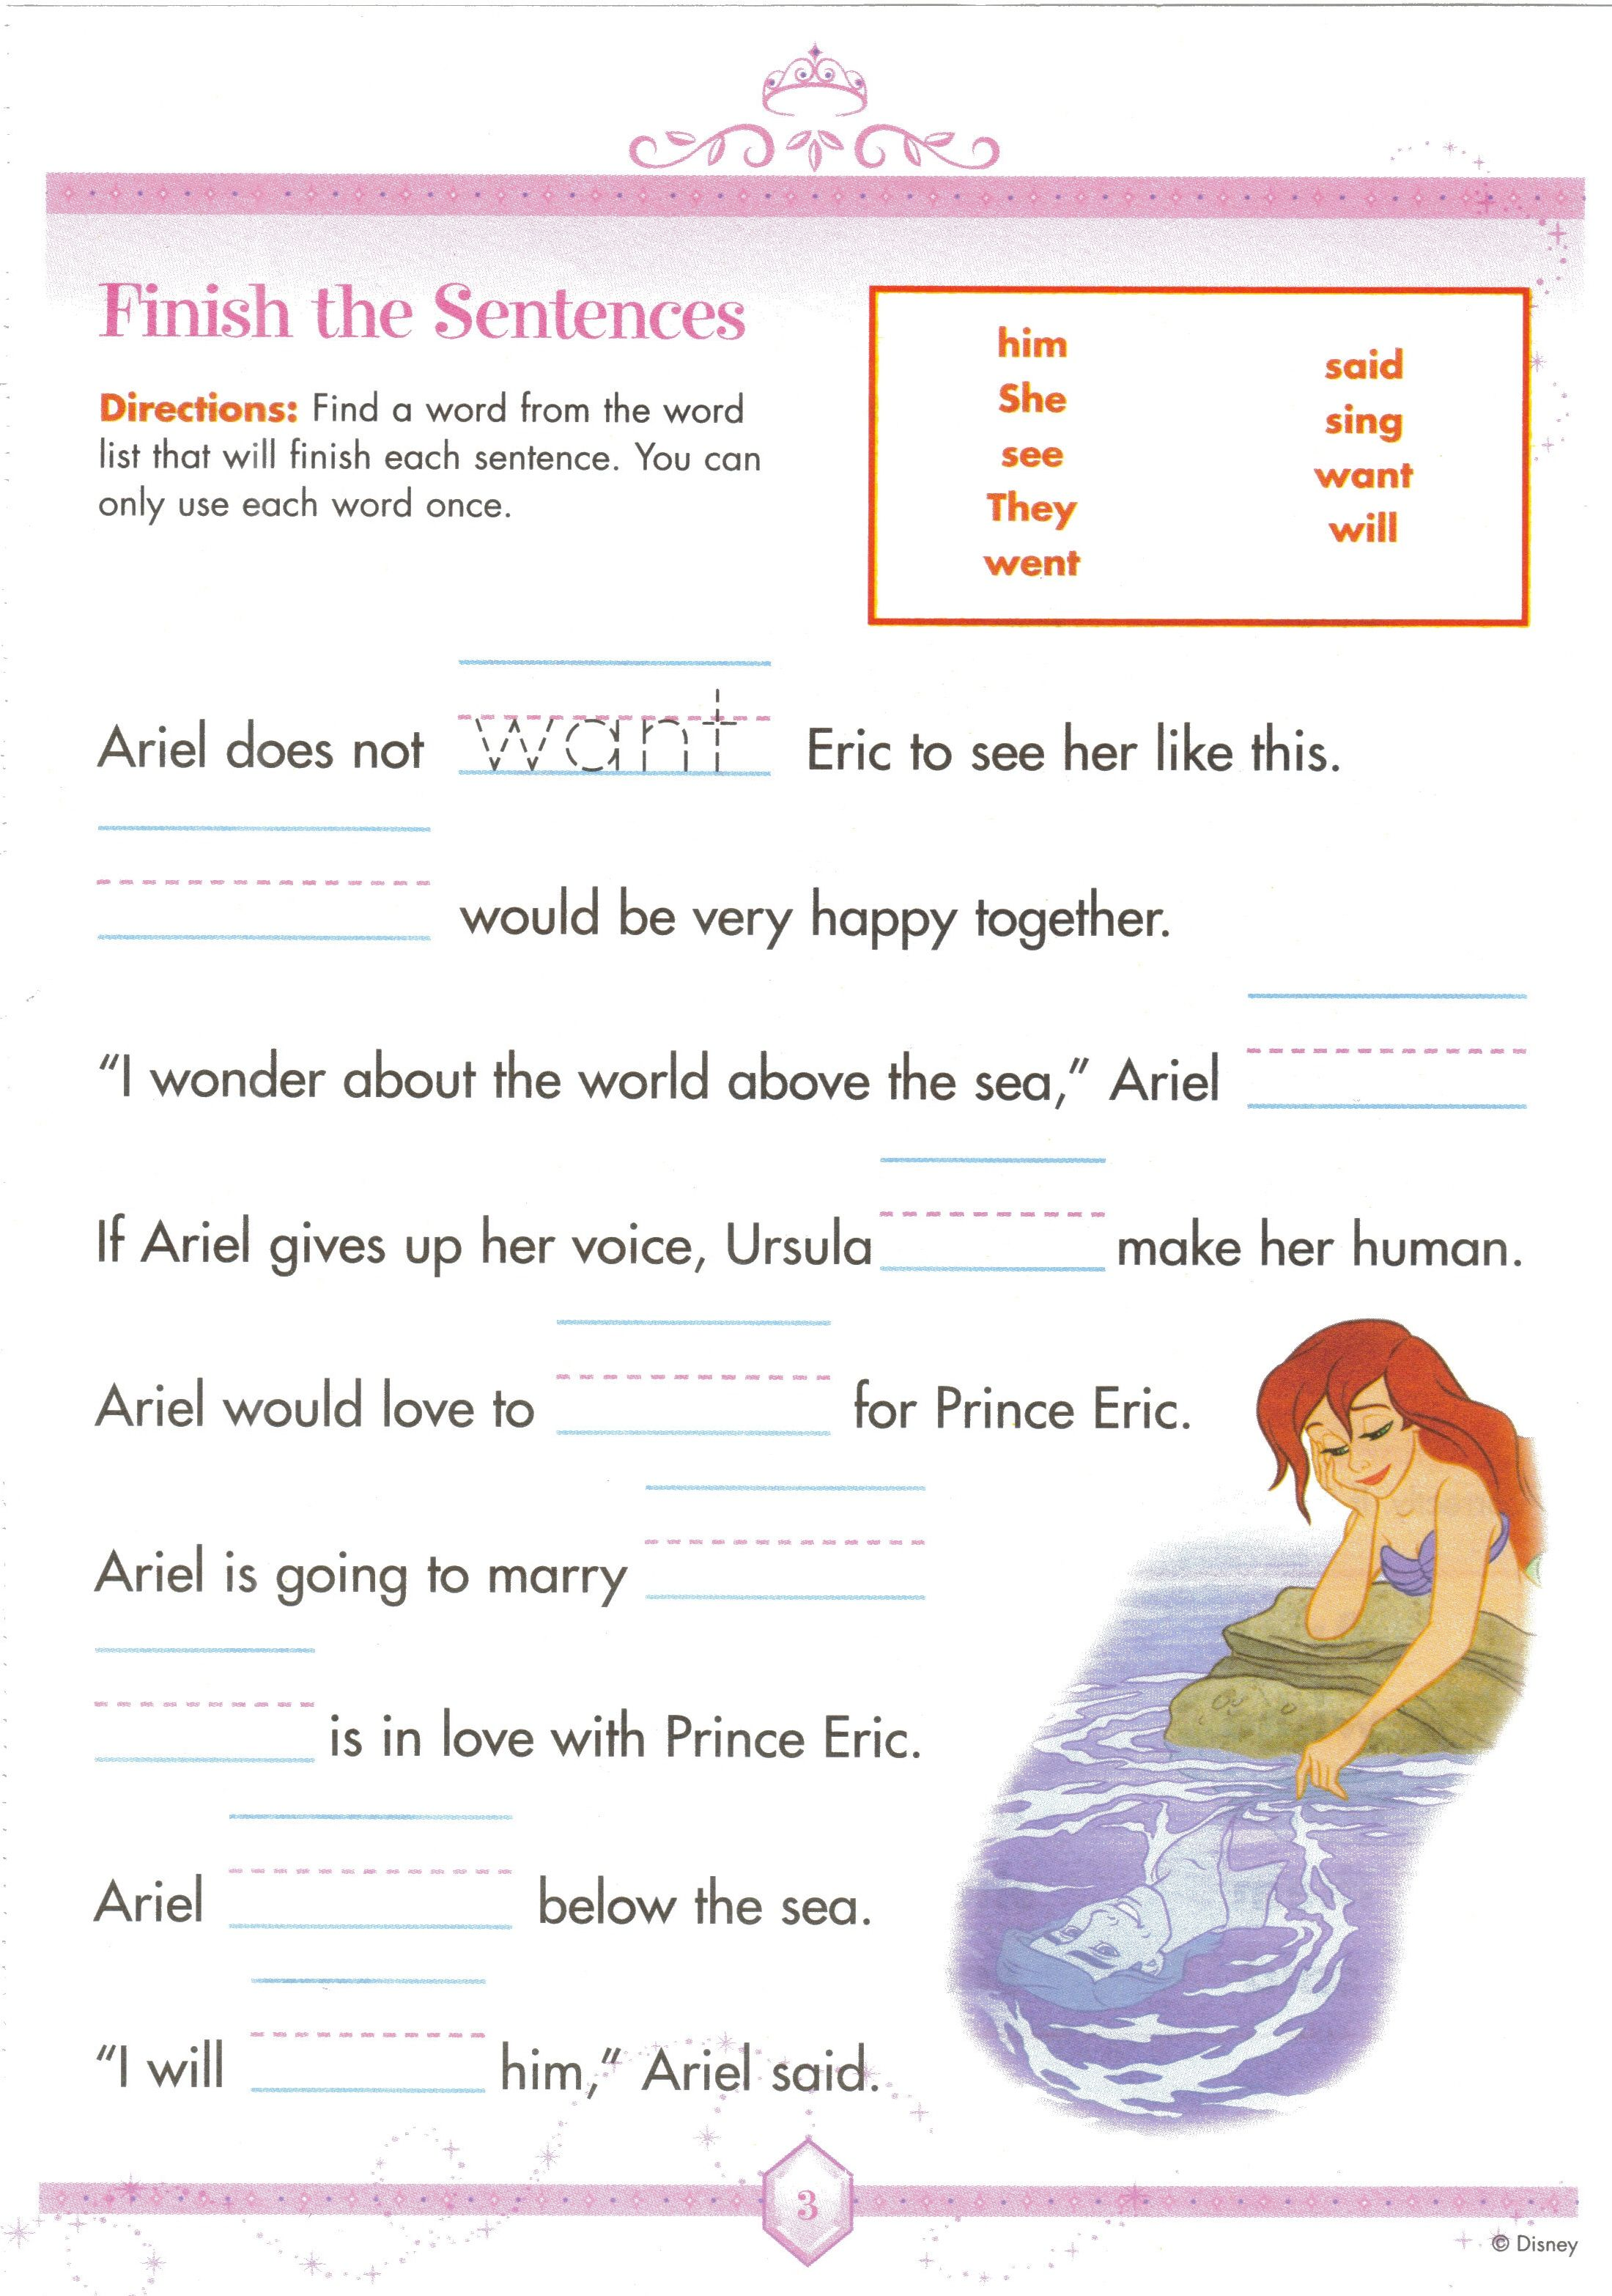 Weirdmailus  Stunning  Images About Worksheets On Pinterest  Fun Facts For Kids  With Handsome  Images About Worksheets On Pinterest  Fun Facts For Kids Earth Day Worksheets And Jungles With Agreeable Slope Intercept Graphing Worksheet Also Color Addition Worksheets In Addition Telling Time Worksheets For First Grade And Preschool Printable Worksheets Free As Well As Subtraction Of Fractions Worksheets Additionally Titration Calculations Worksheet From Pinterestcom With Weirdmailus  Handsome  Images About Worksheets On Pinterest  Fun Facts For Kids  With Agreeable  Images About Worksheets On Pinterest  Fun Facts For Kids Earth Day Worksheets And Jungles And Stunning Slope Intercept Graphing Worksheet Also Color Addition Worksheets In Addition Telling Time Worksheets For First Grade From Pinterestcom